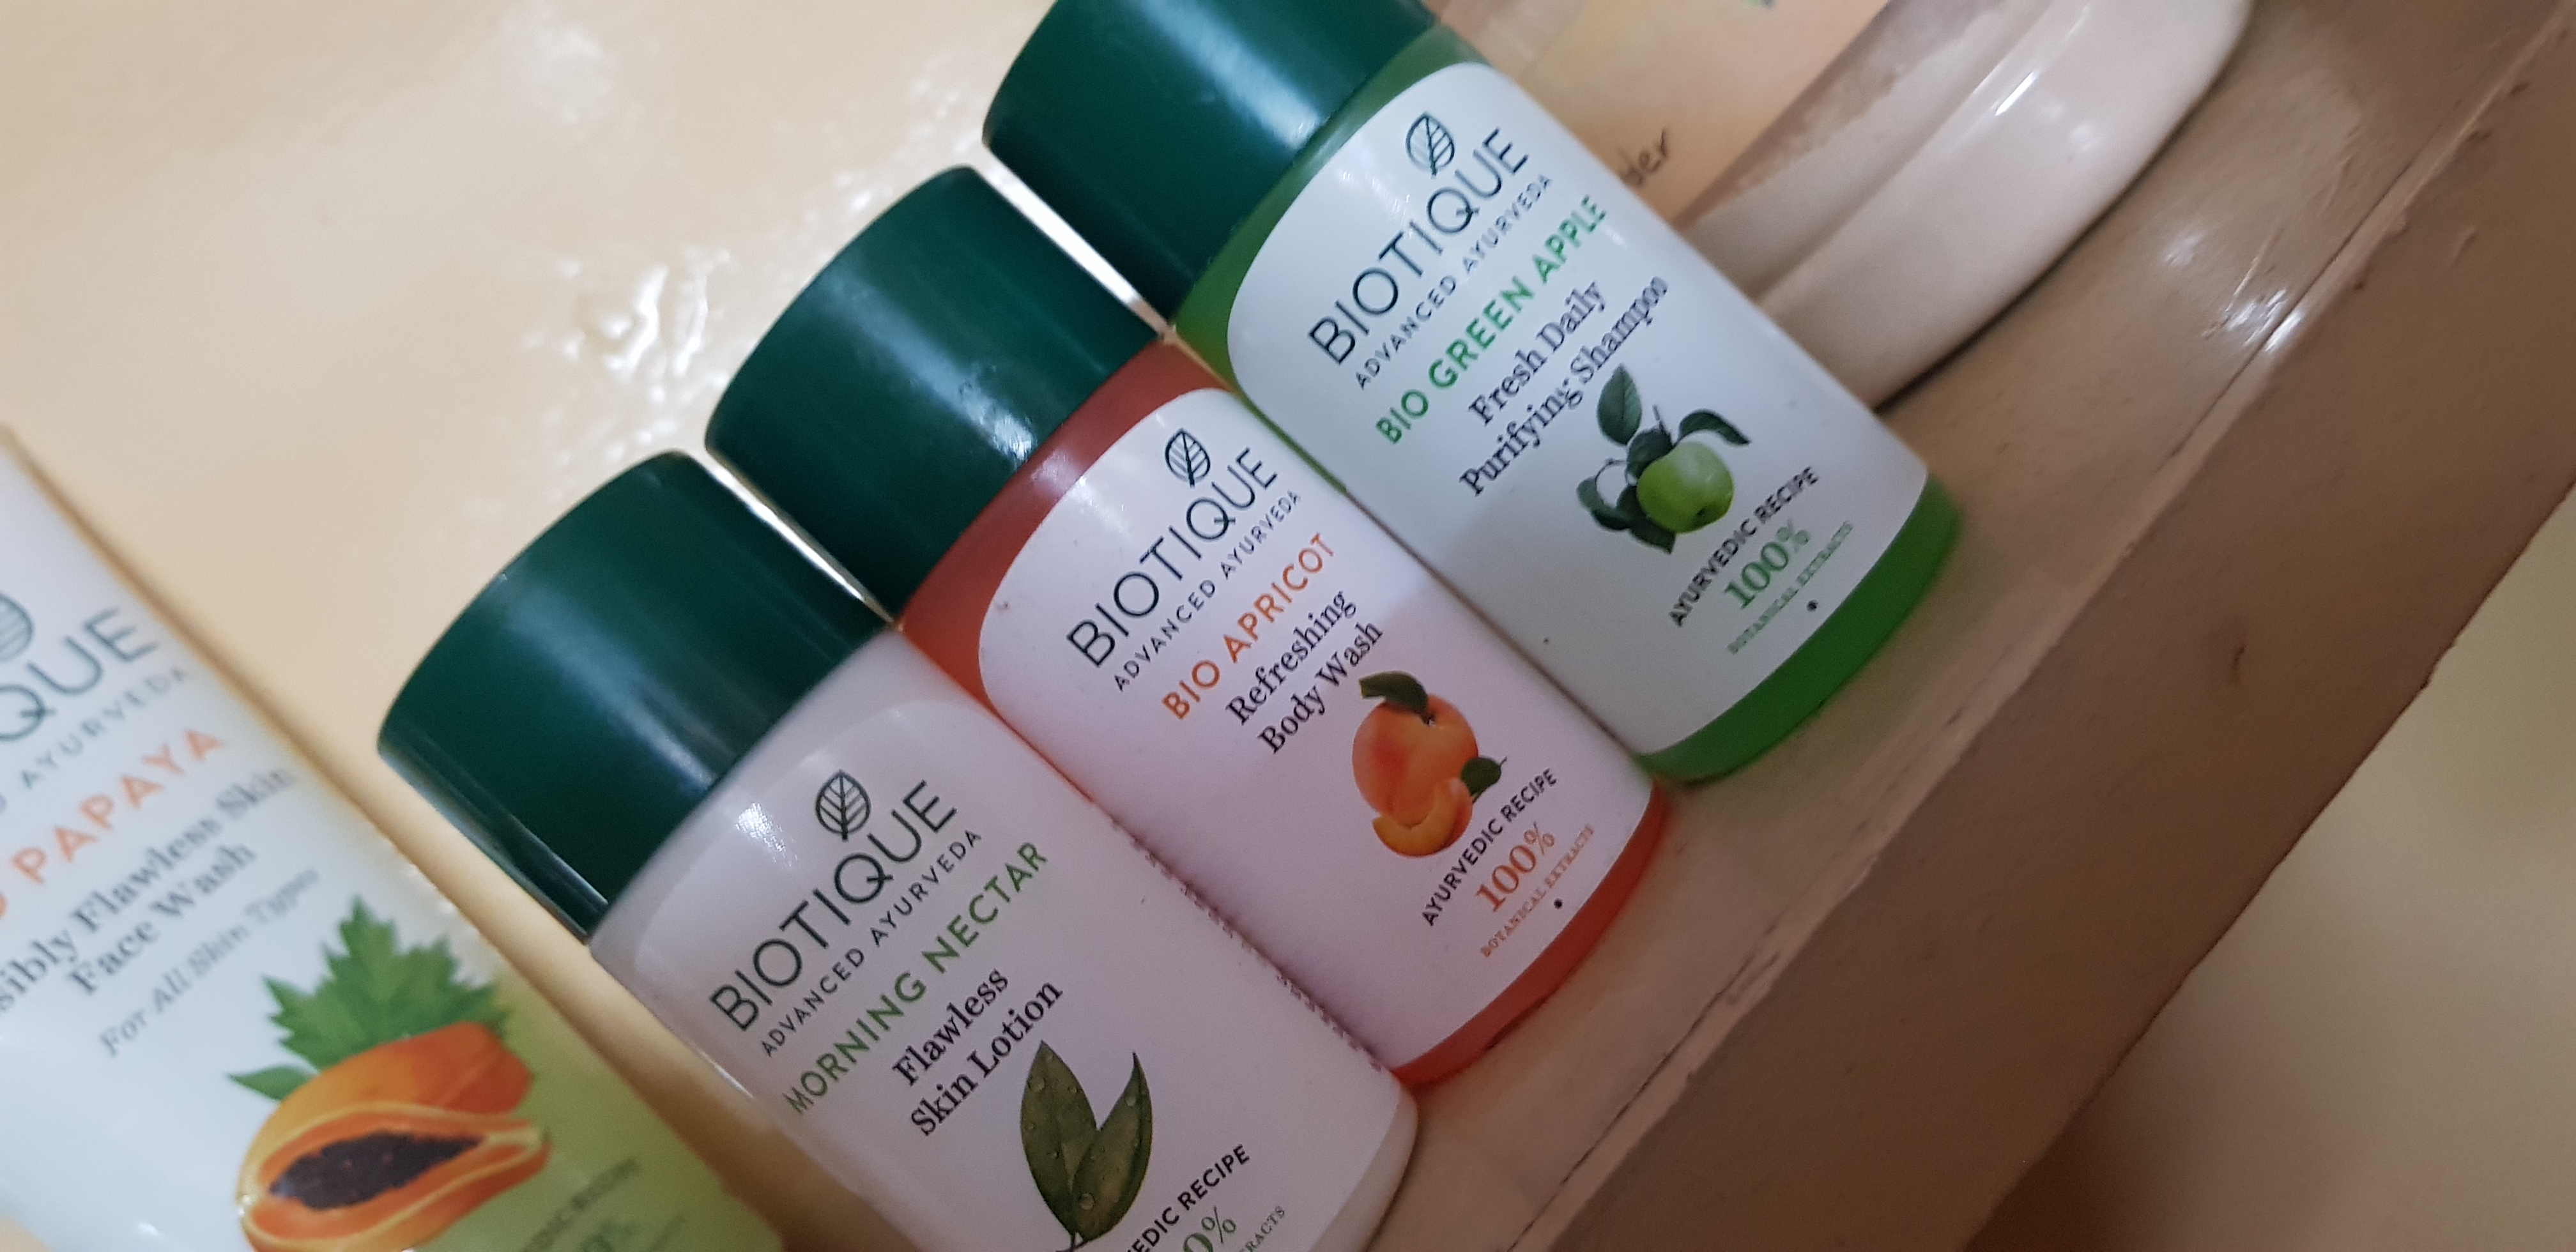 Biotique Bio Apricot Refreshing Body Wash-Mild and gentle!-By poonam_kakkar-1